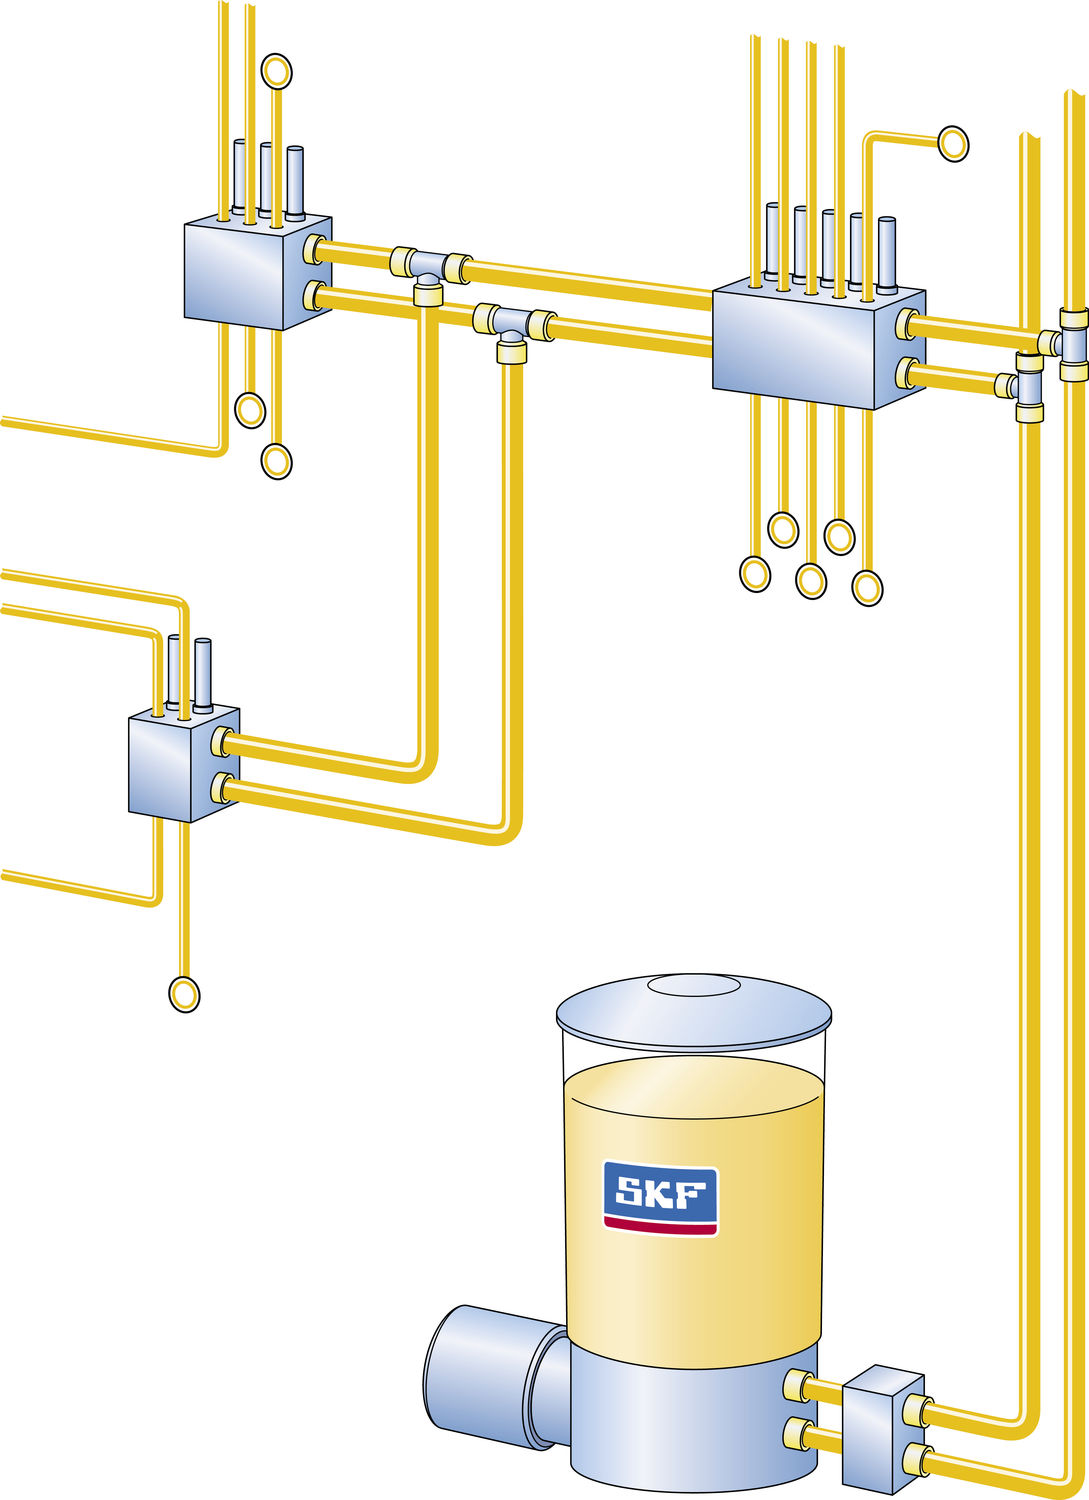 Automatic Lubrication Systems Price Engeneering